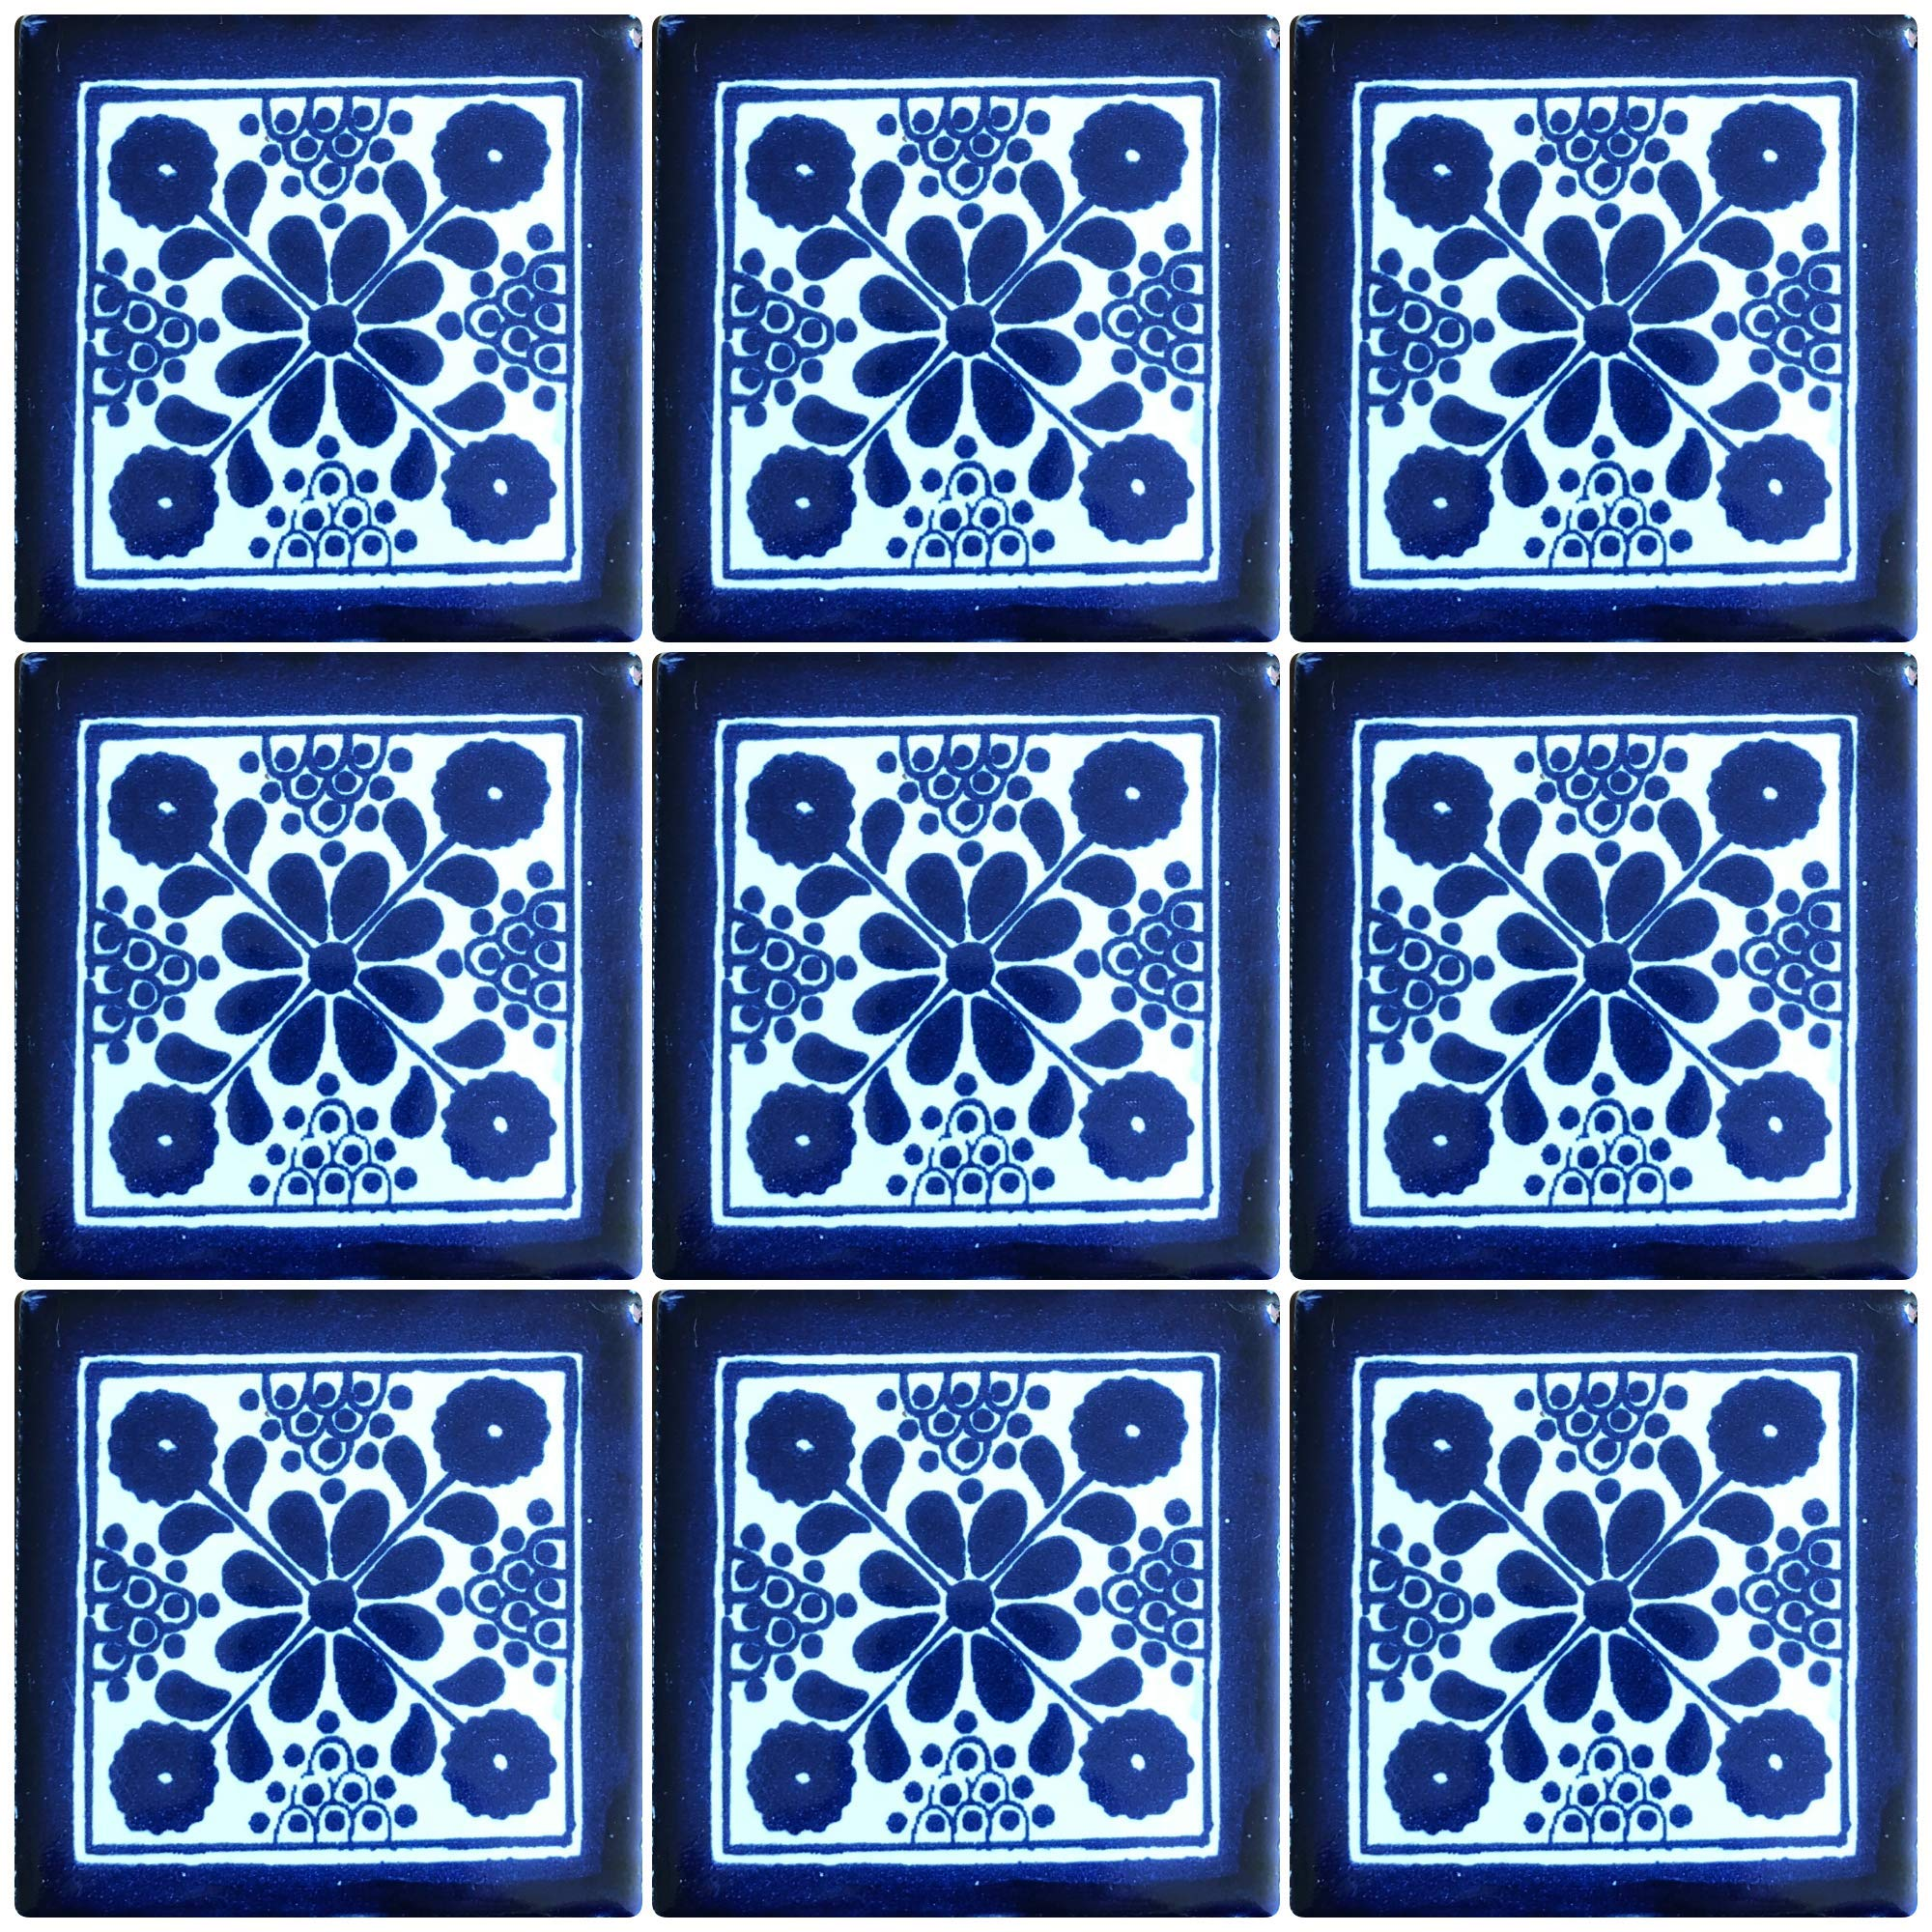 Ceramic Talavera Mexican Tile 4x4'', 9 Pieces (NOT Stickers) A1 Export Quality! - EX27